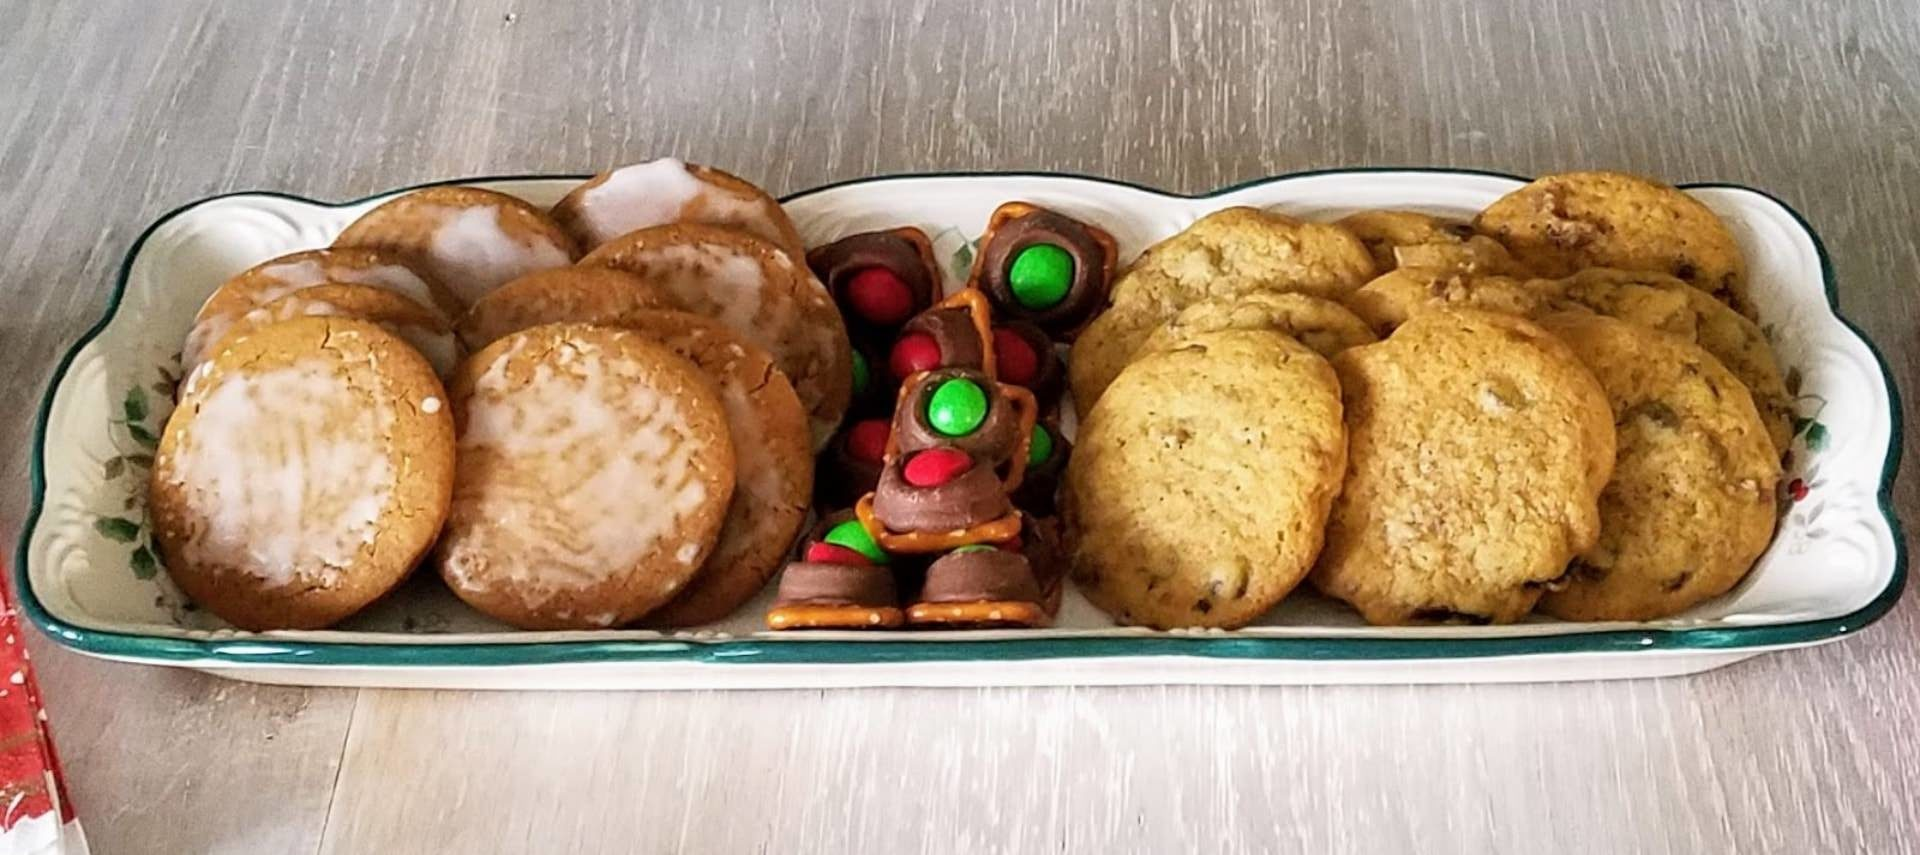 Large platter filled with an assortment of cookies